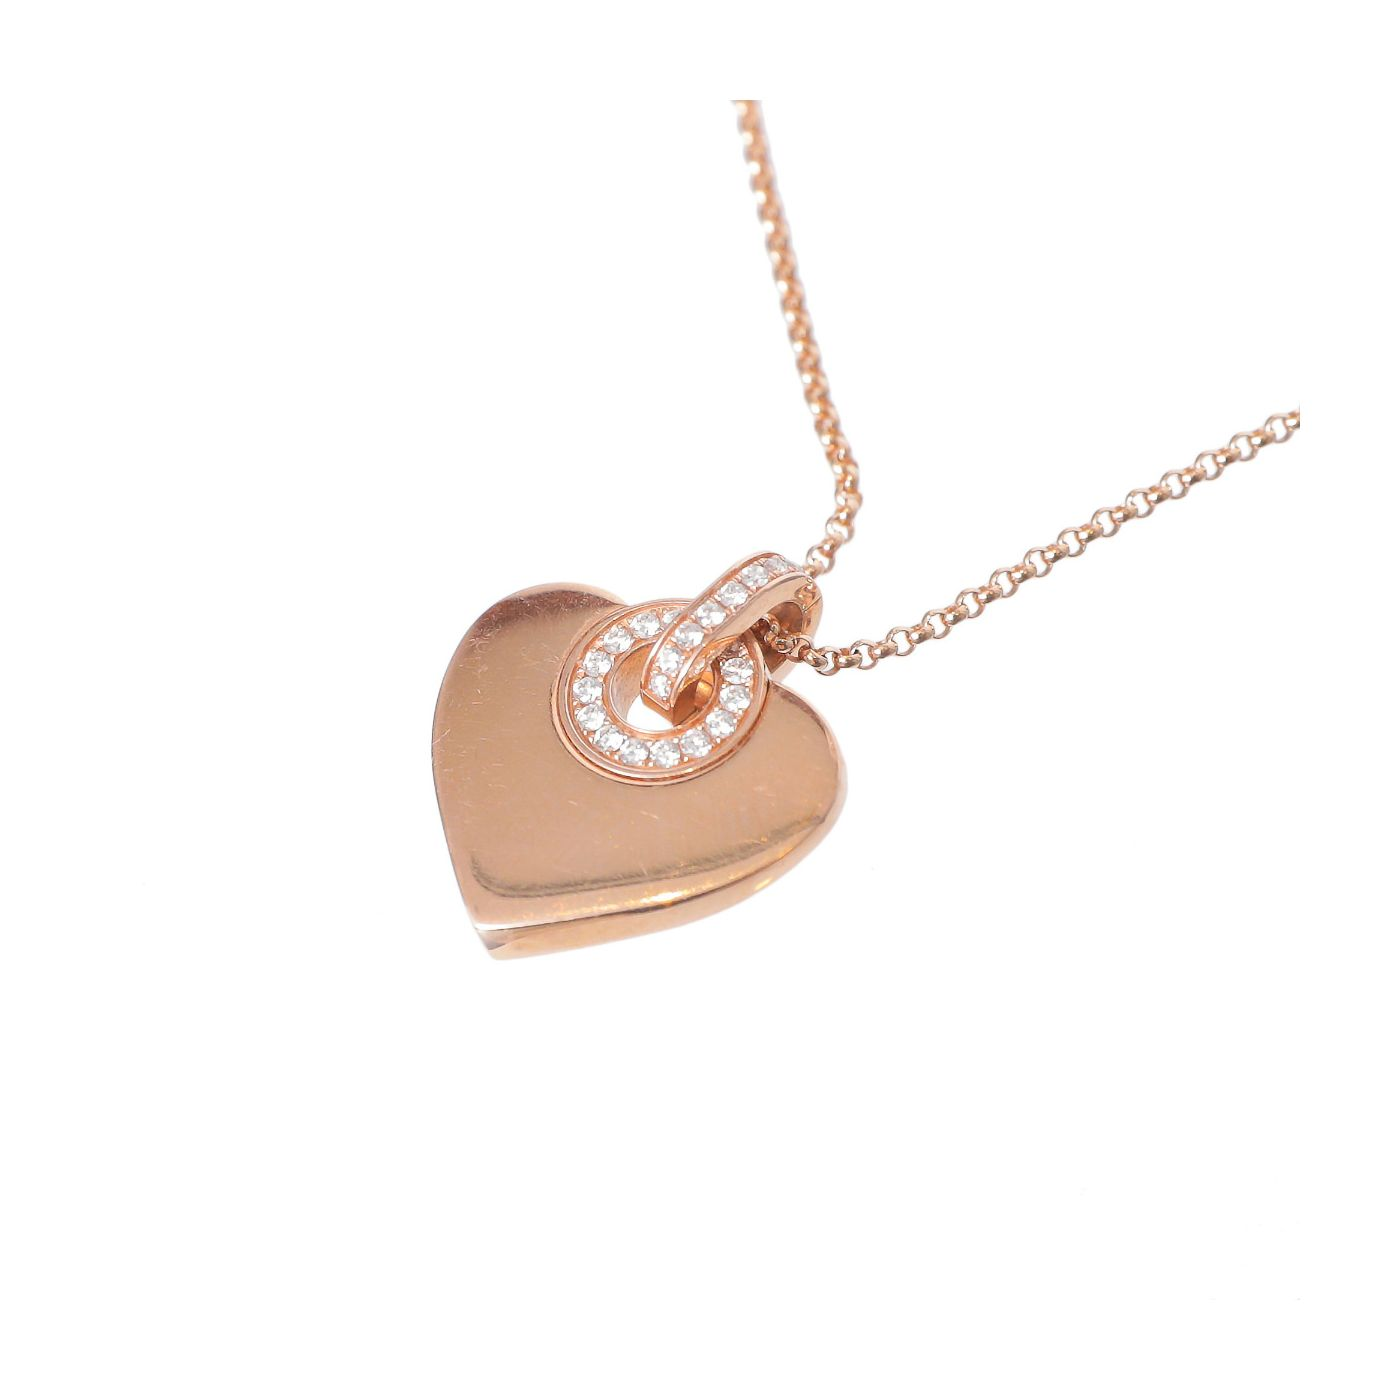 Bvlgari 18k Rose Gold Cuore Heart Necklace